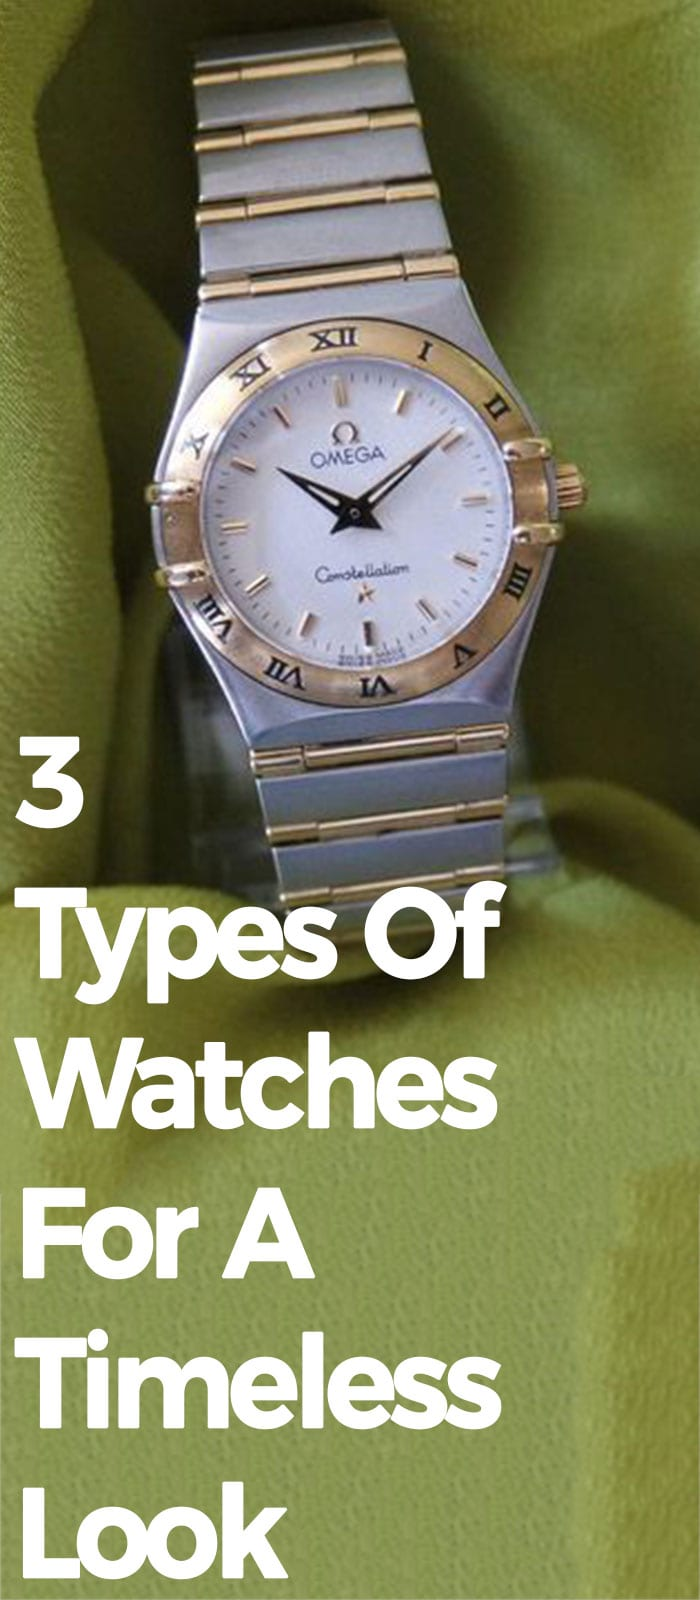 3 Types Of Watches For A Timeless Look!